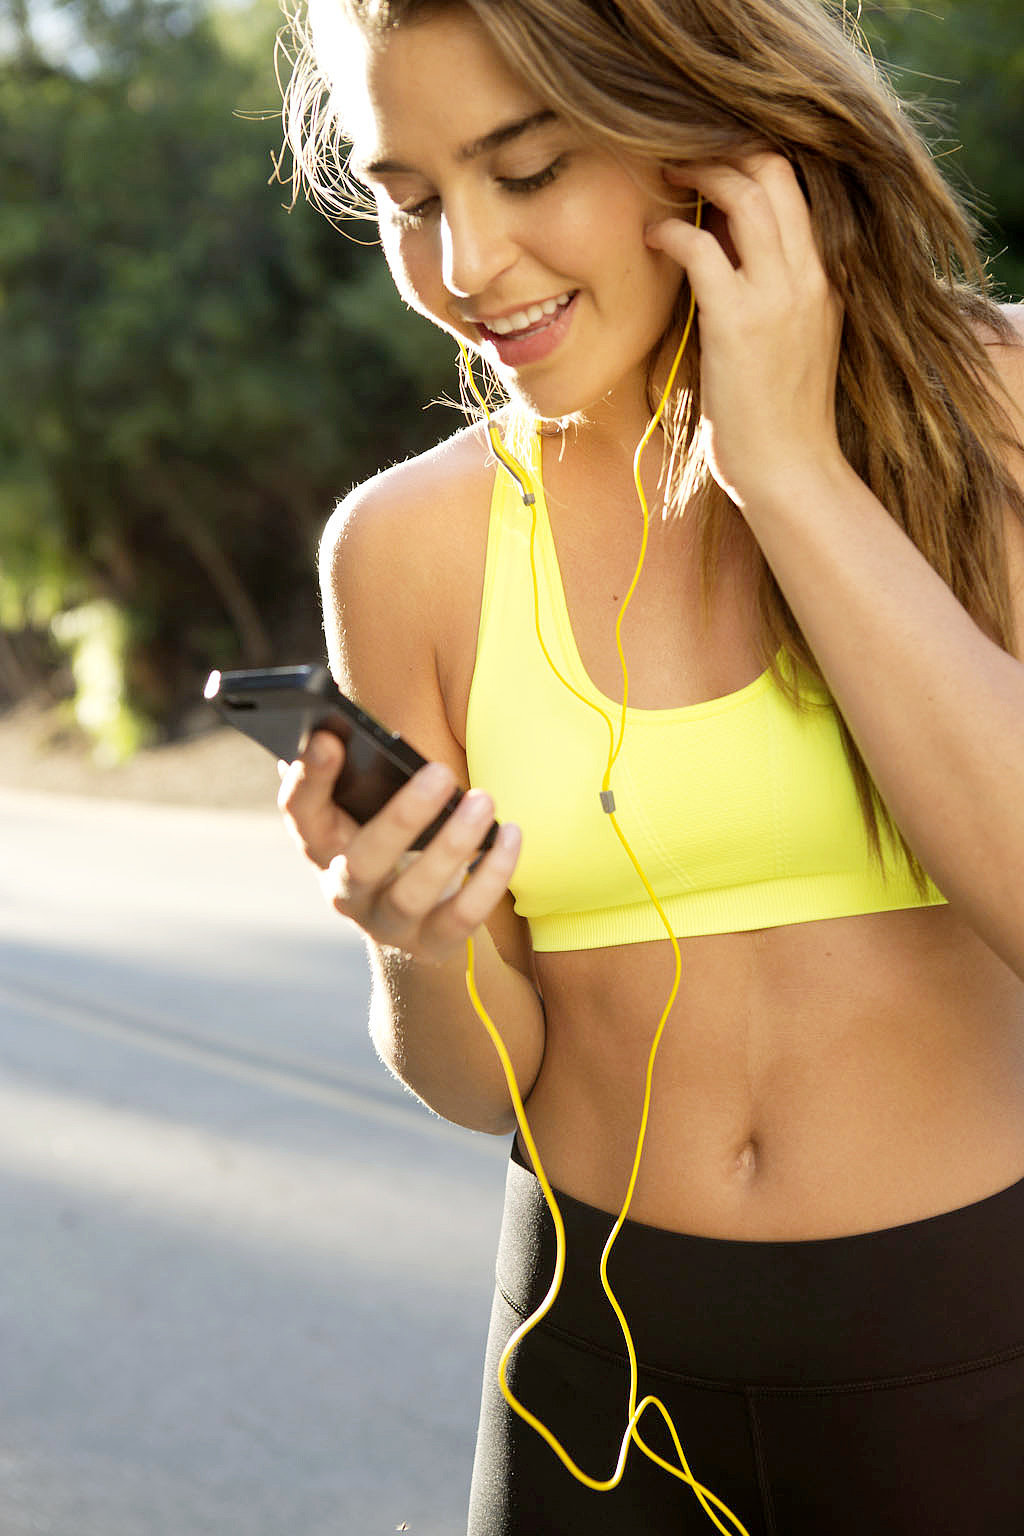 DO YOU HAVE ANY OF THIS SONGS ON YOURNEW YEAR'S WORKOUT PLAYLIST?CHECK IT OUT THESE LIST OF 56 WORKOUT SONGS.